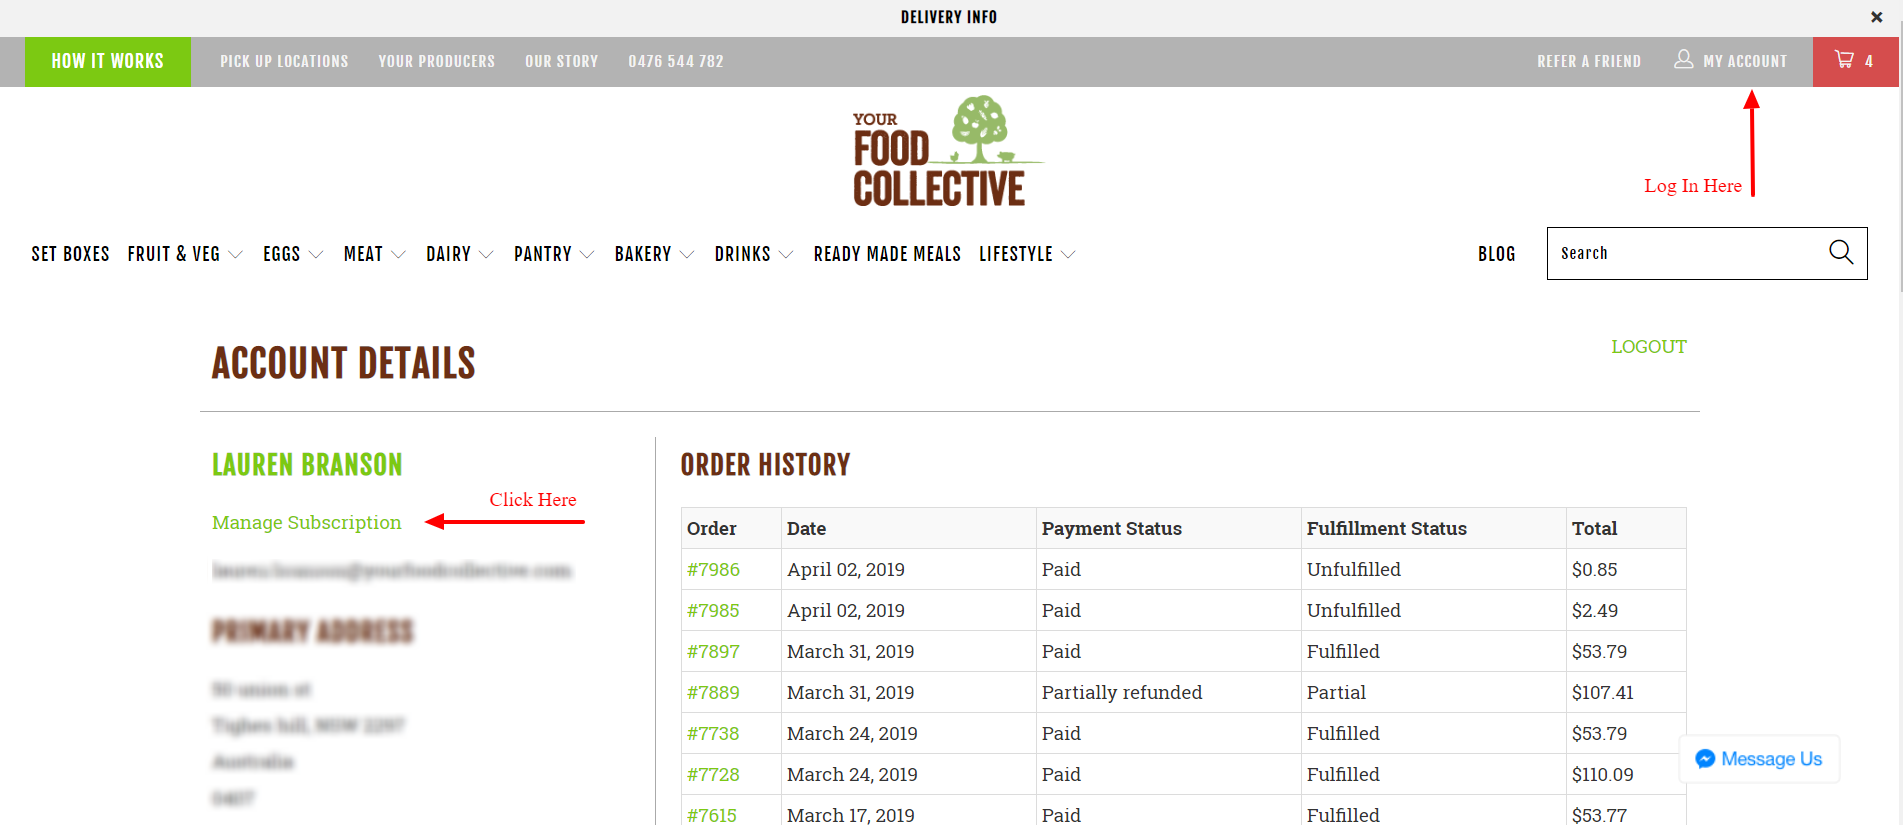 HOw to log in and manage your order